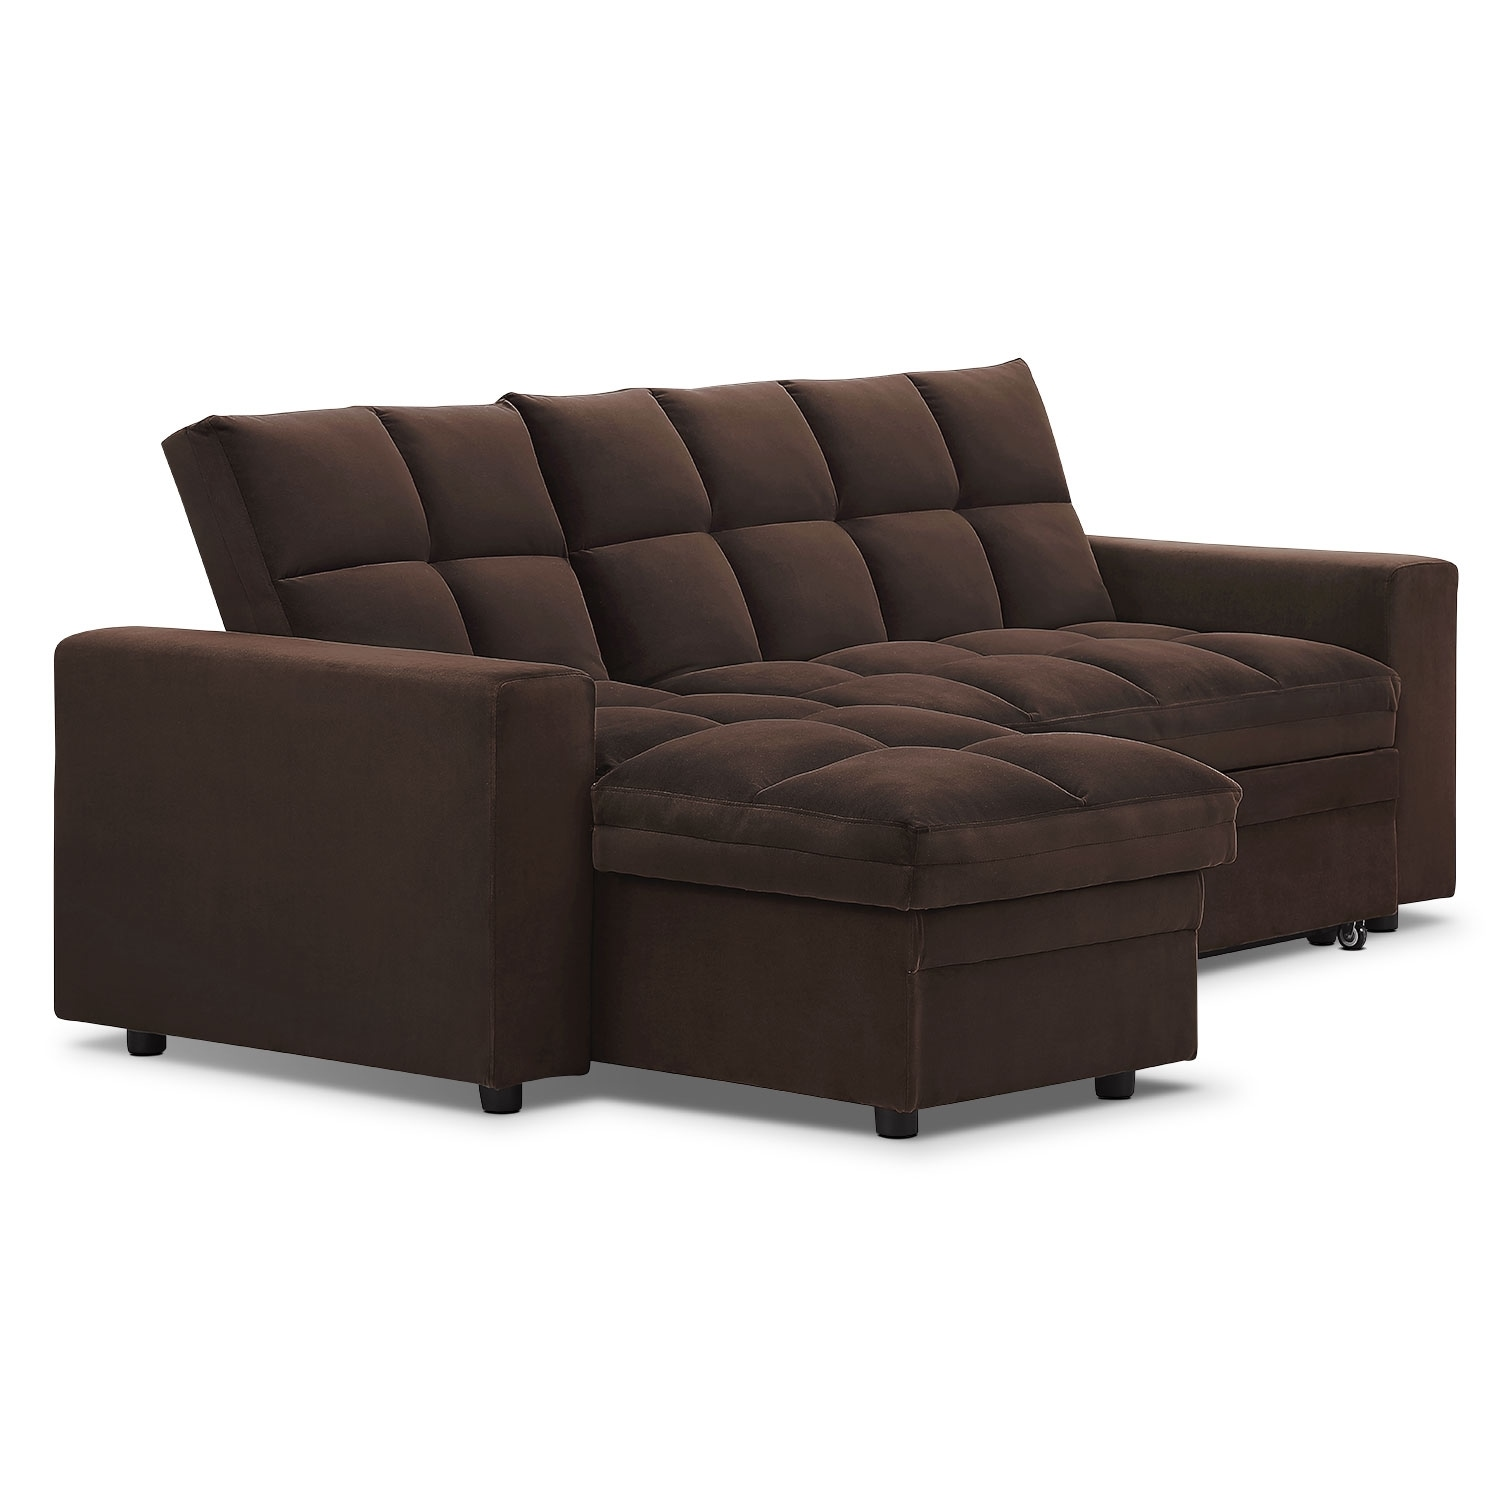 Metro chaise sofa bed with storage brown american for Brown sectionals with chaise